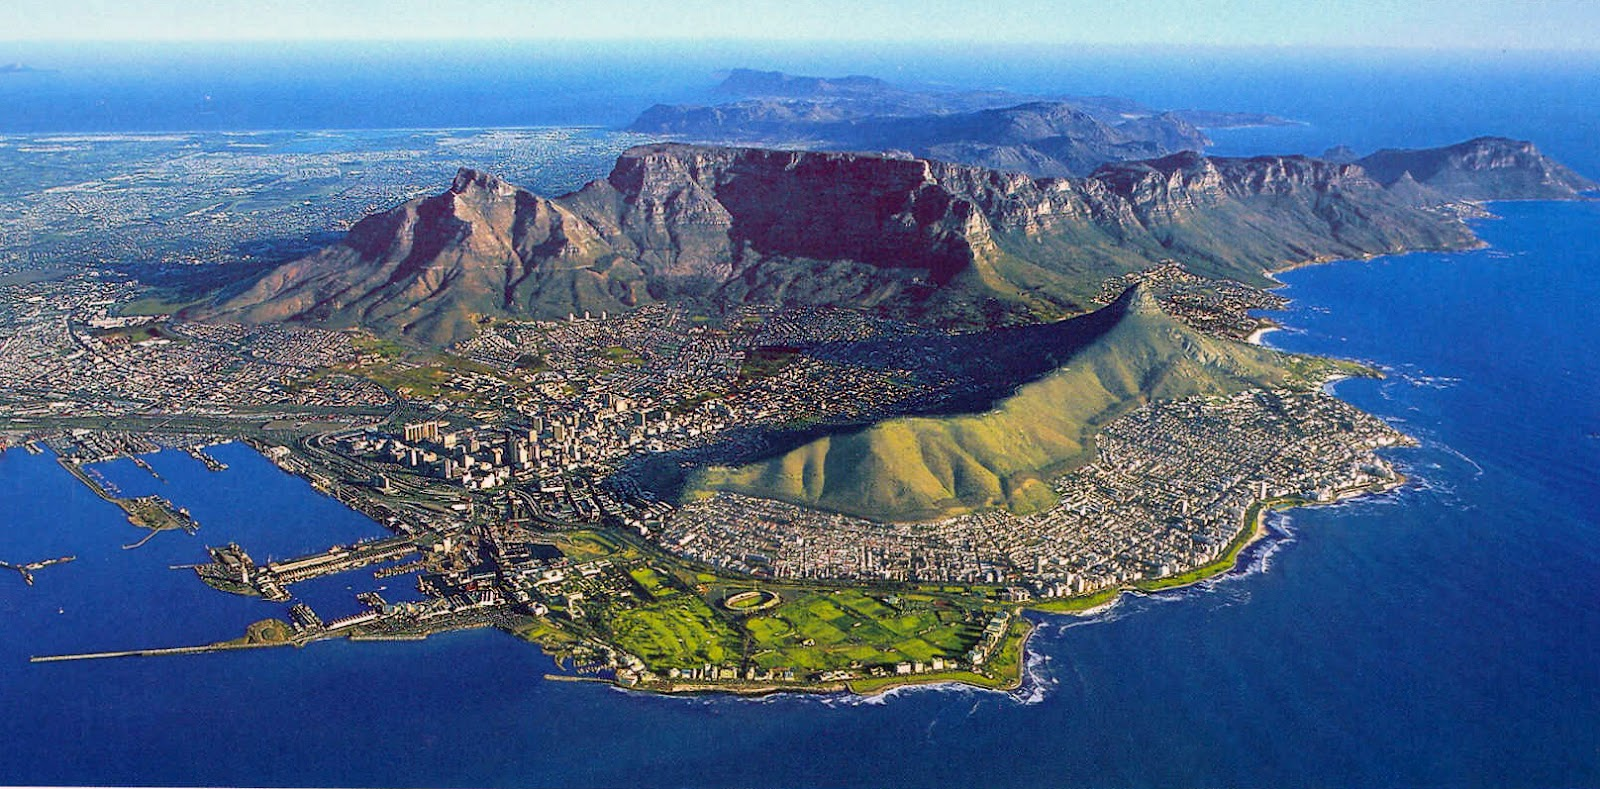 Cape town, south africa photography - id: 30600 - photography abyss